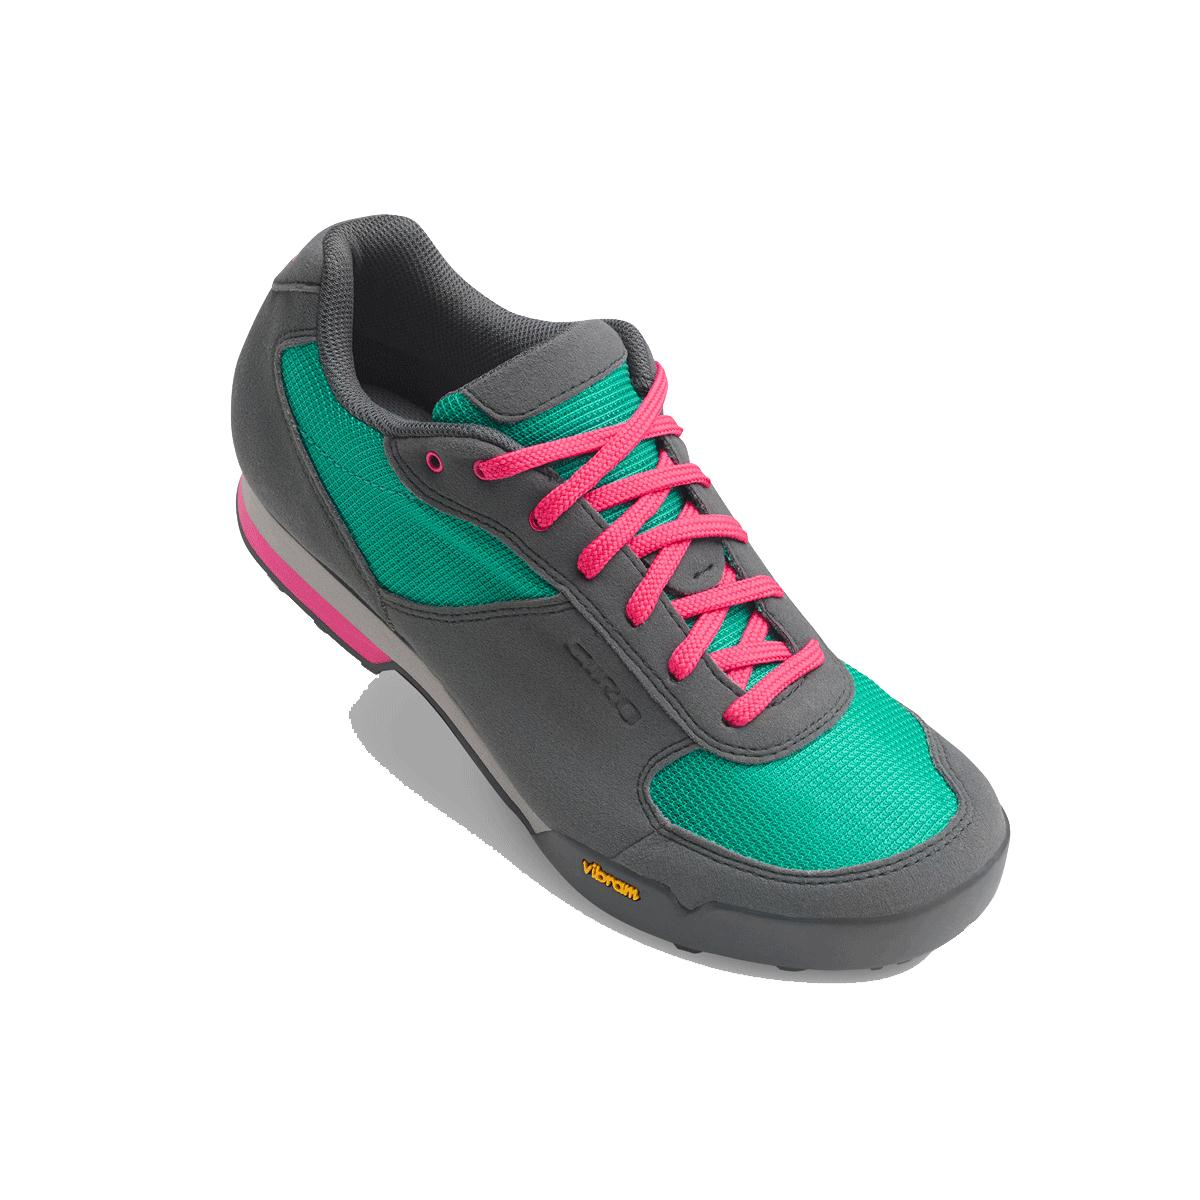 GIRO Petra Vr Womens MTB Cycling Shoes 2018 Turquoise/Bright Pink 37